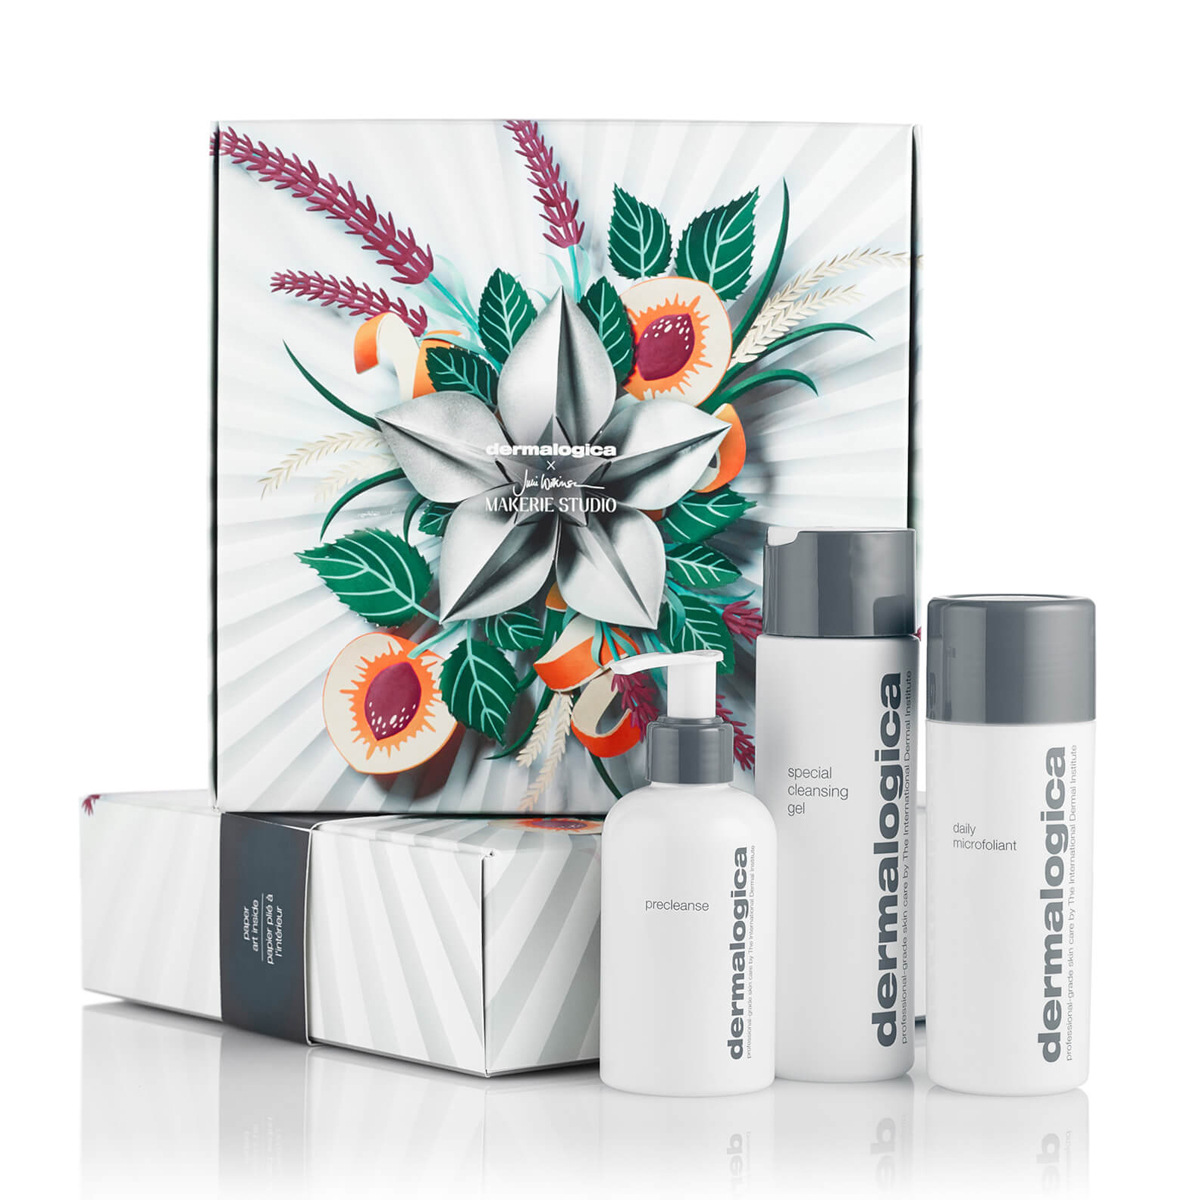 Dermalogica your best cleanse + glow set